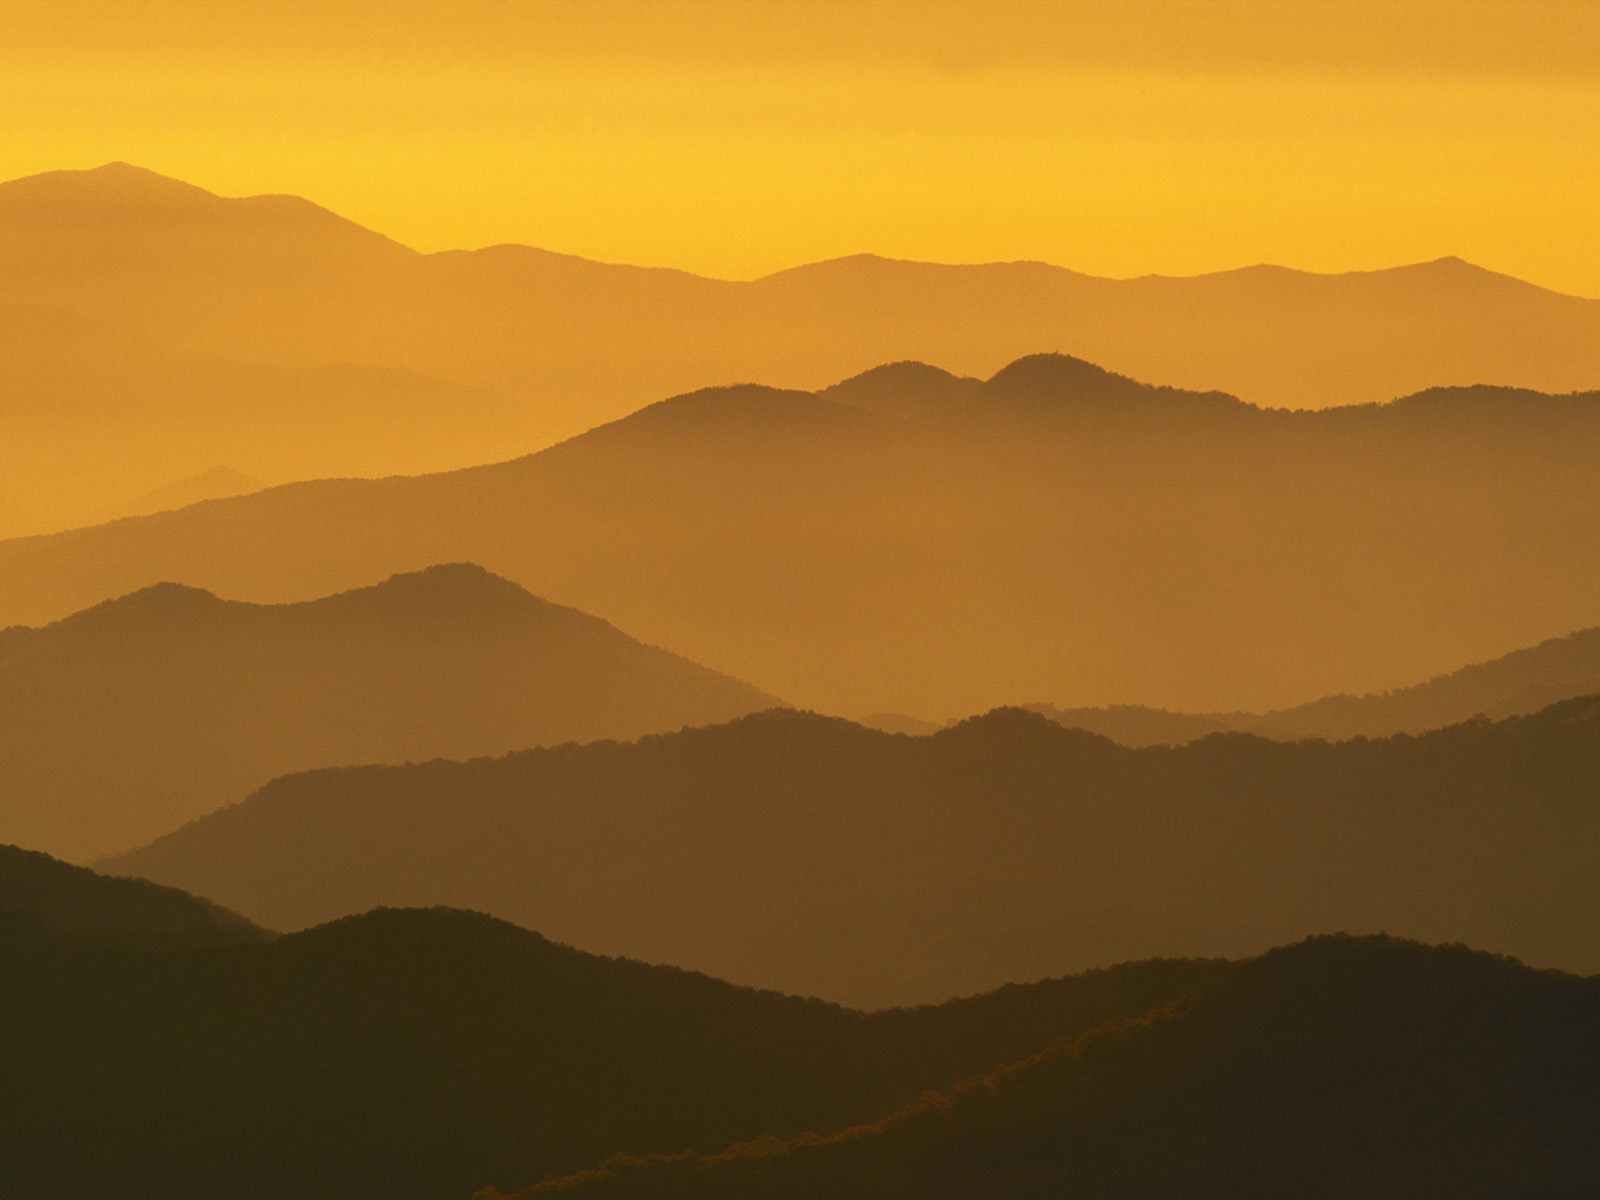 Smoky Mountains clipart #17, Download drawings